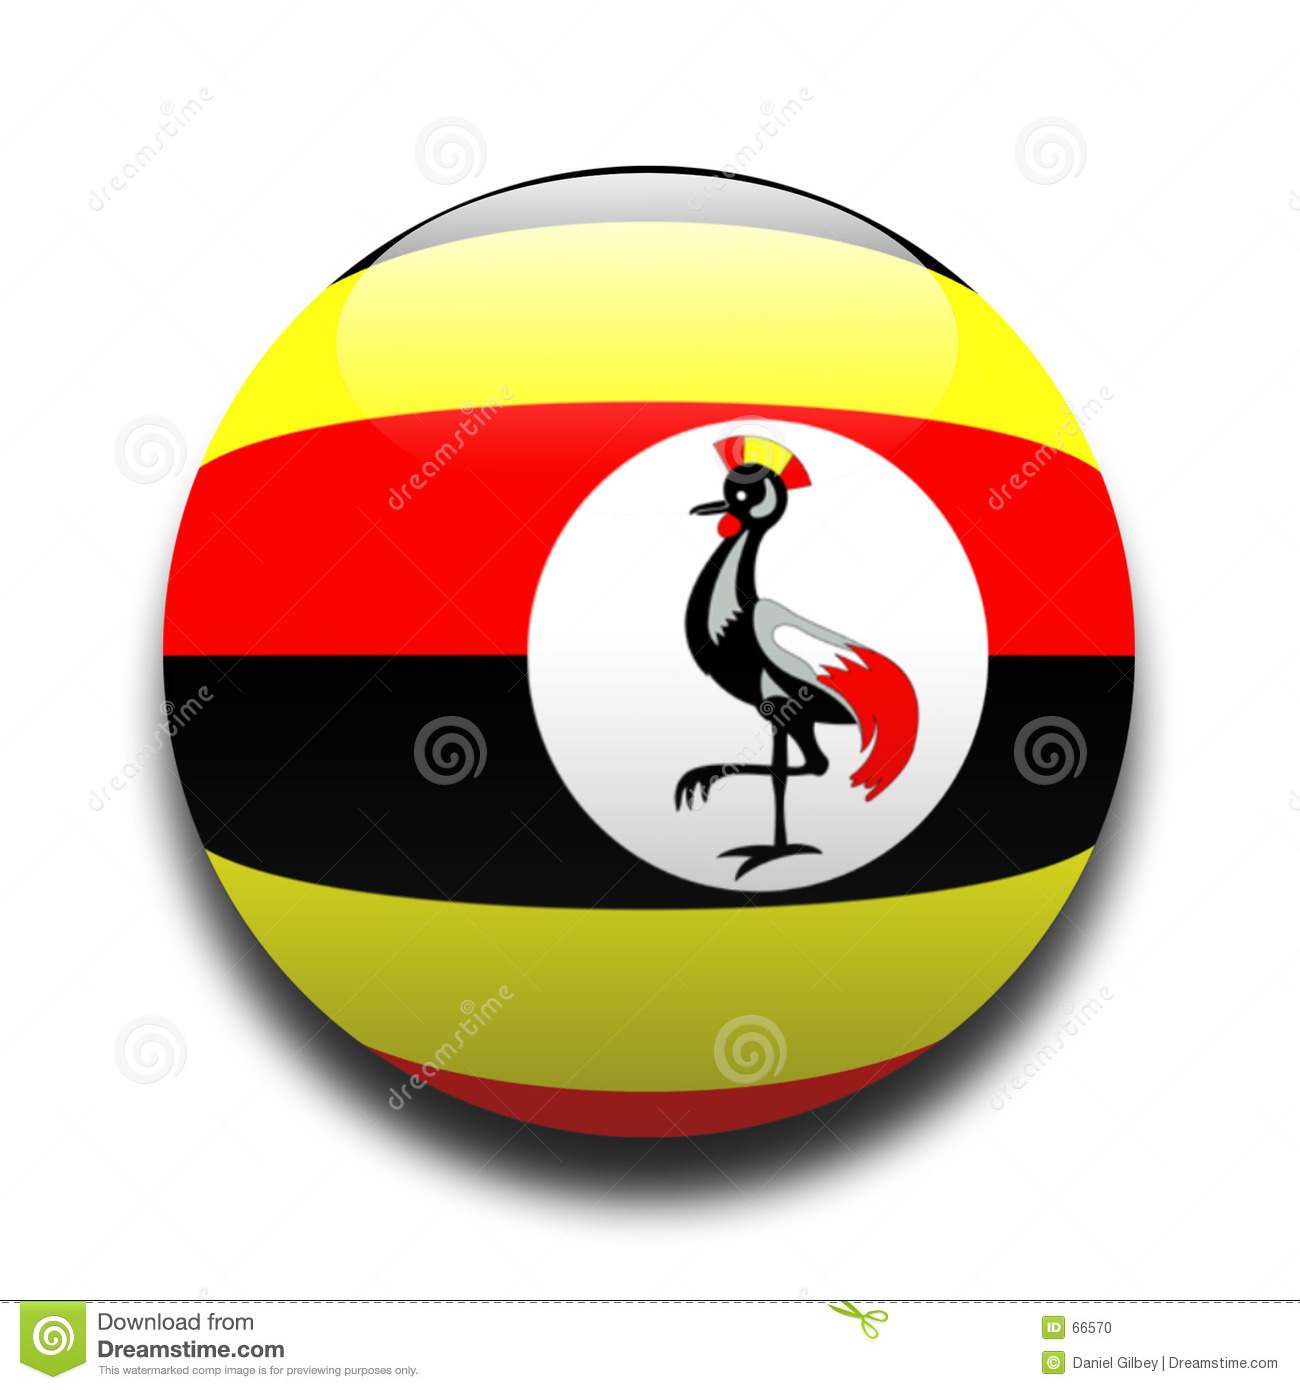 Ugandan flag stock illustration. Illustration of patriotic ...